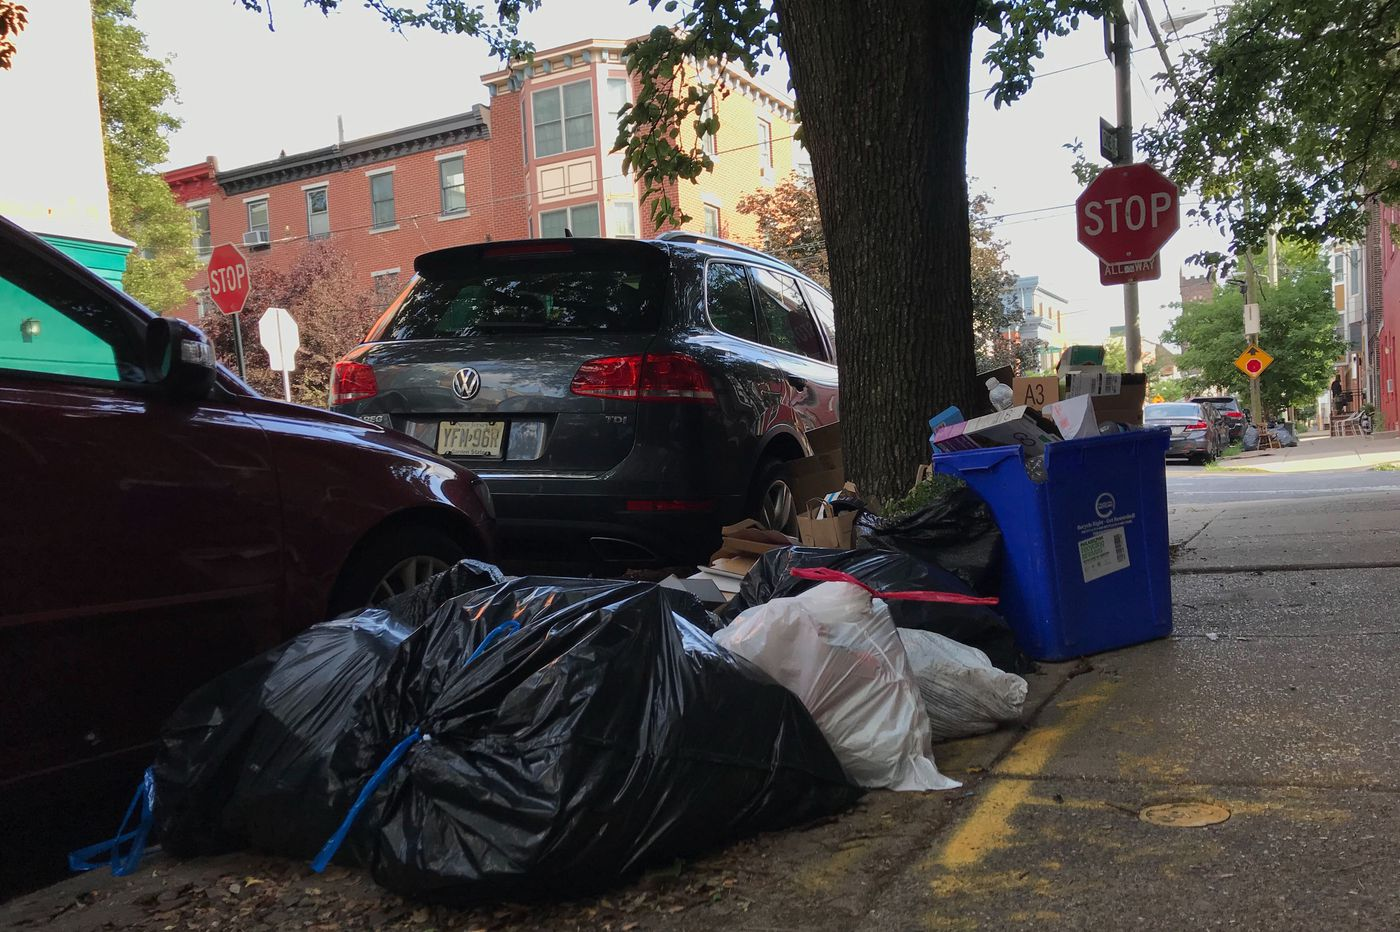 Cancel Philly's failed recycling program | Opinion